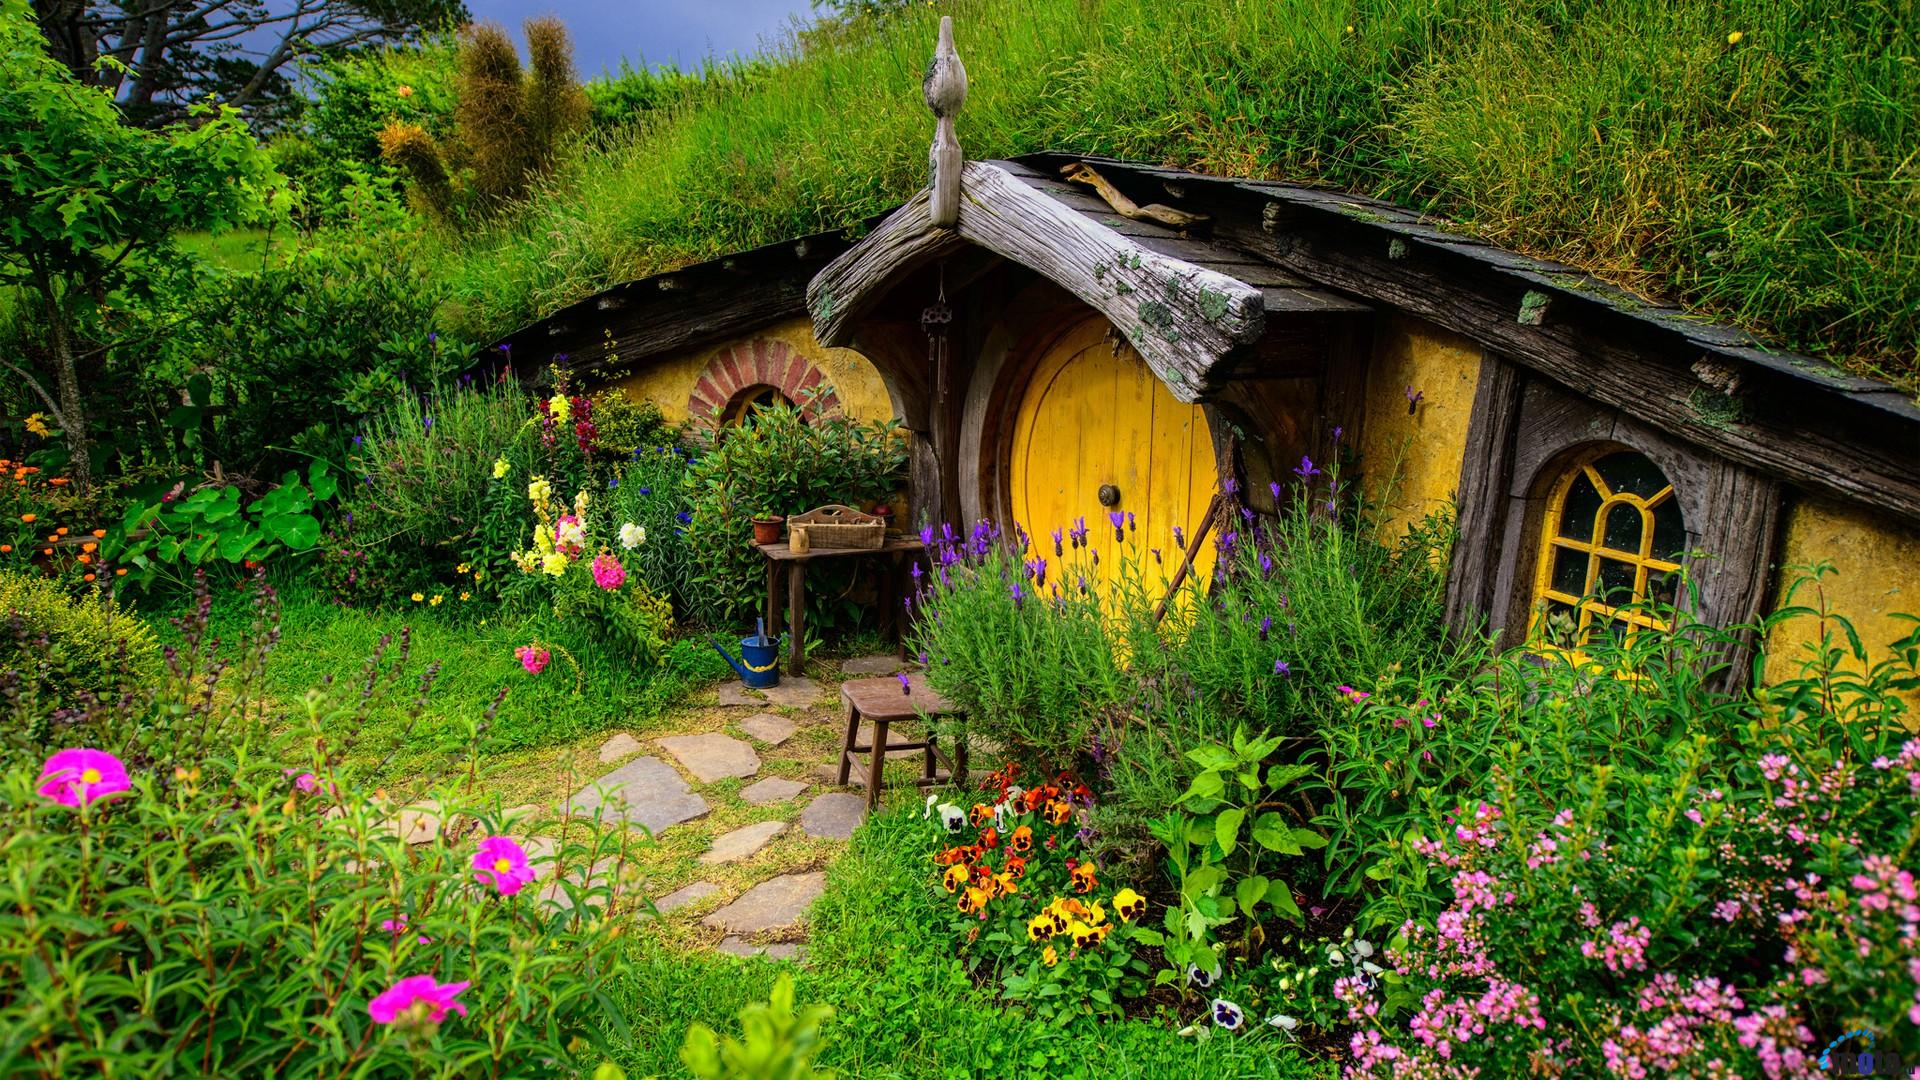 Beautiful Beautiful House Wallpaper 1920x1080 1920x1080